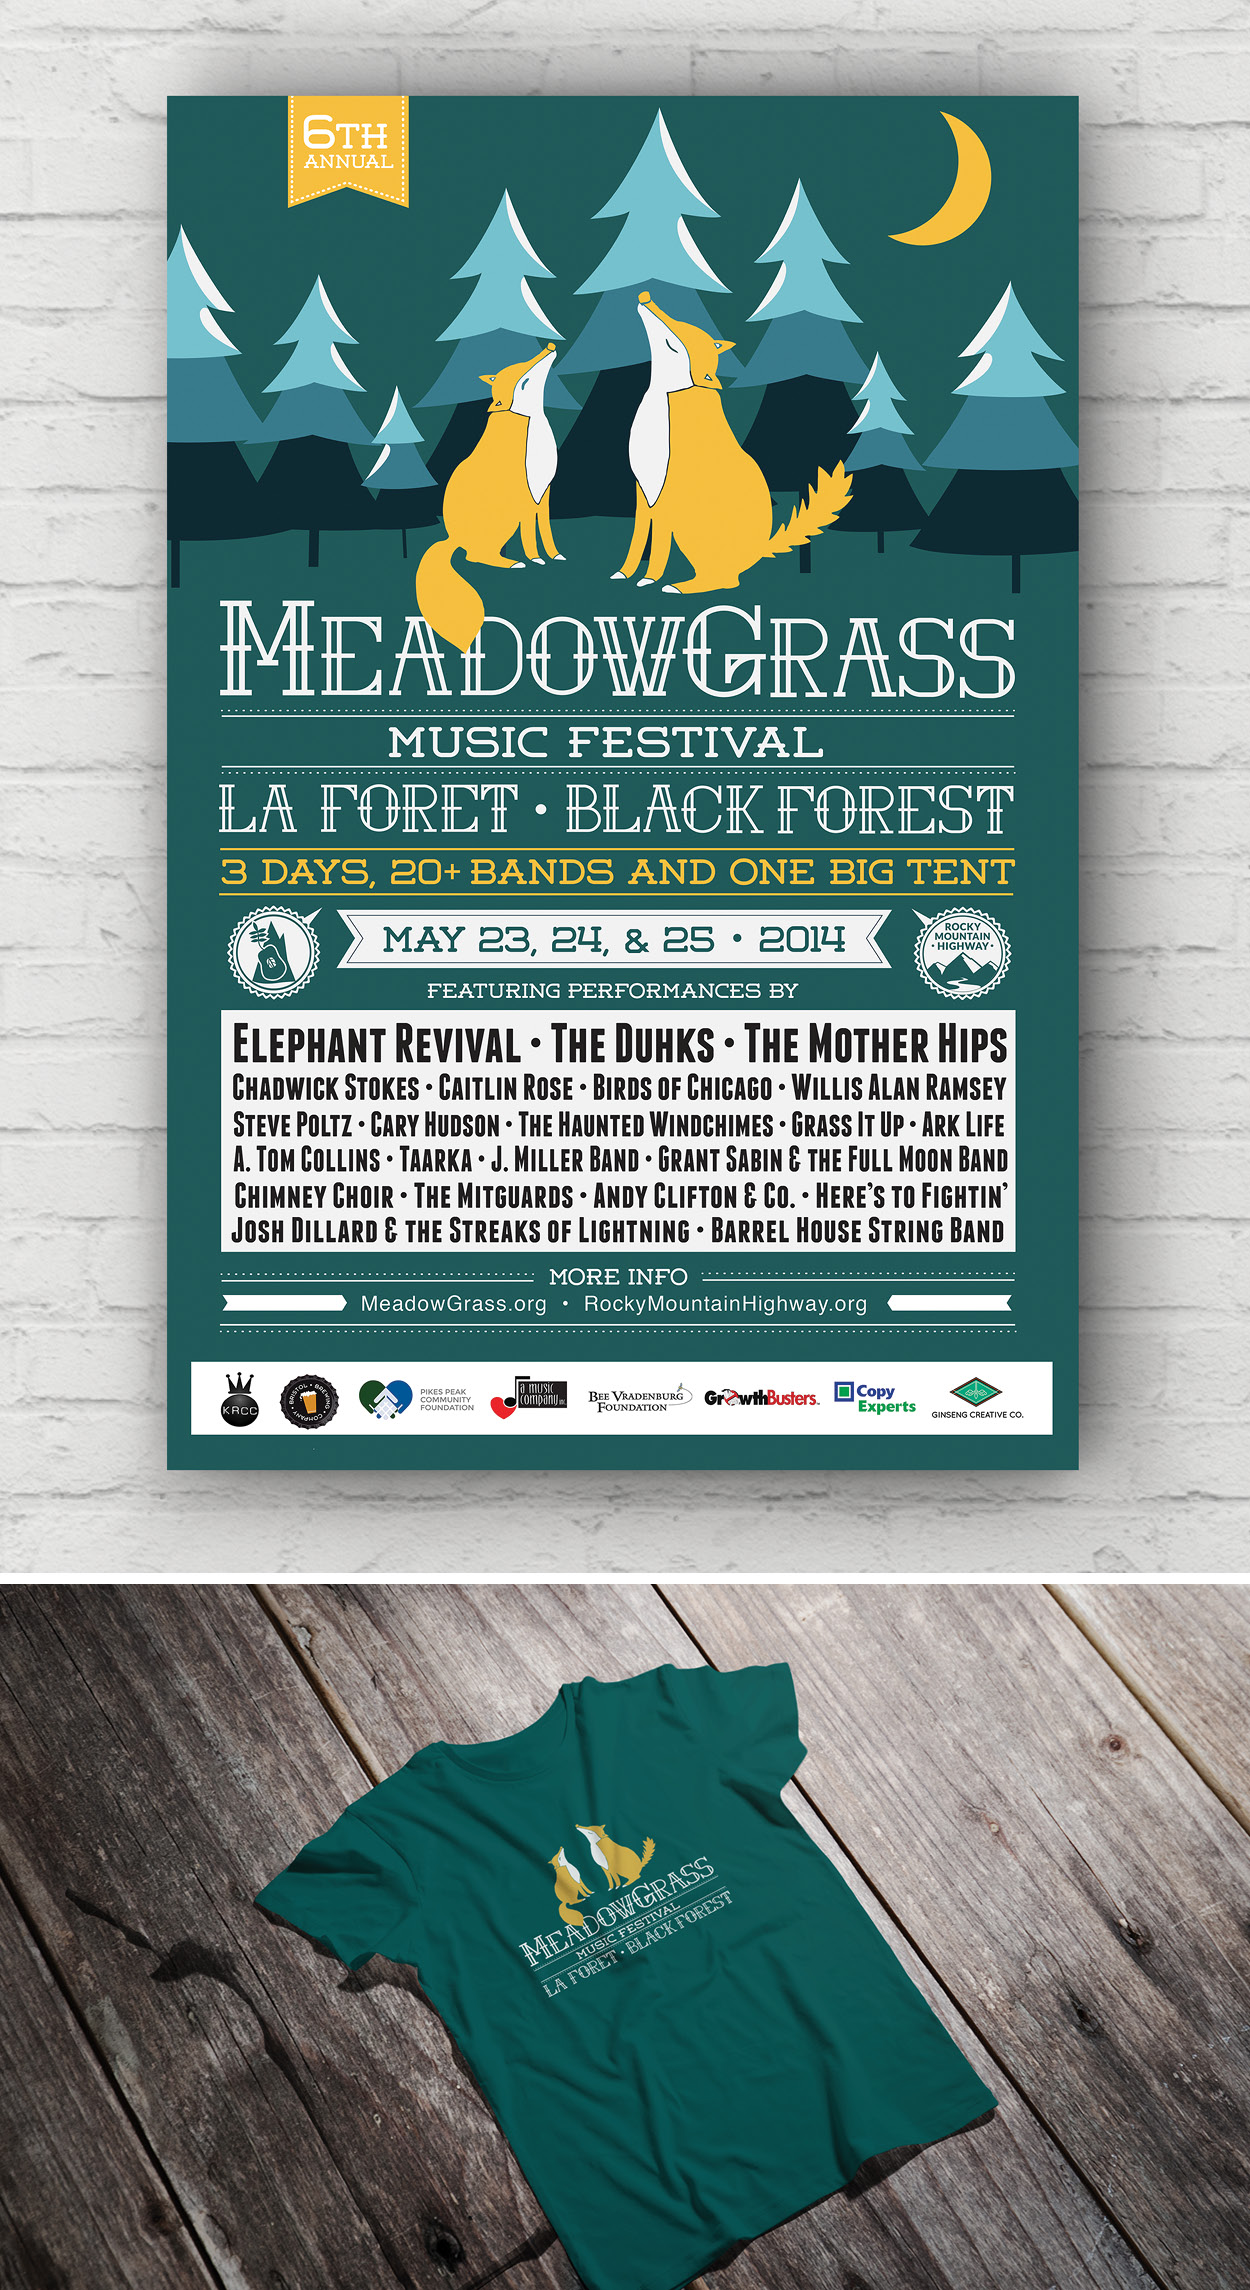 MEADOWGRASS MUSIC FESTIVAL 2014